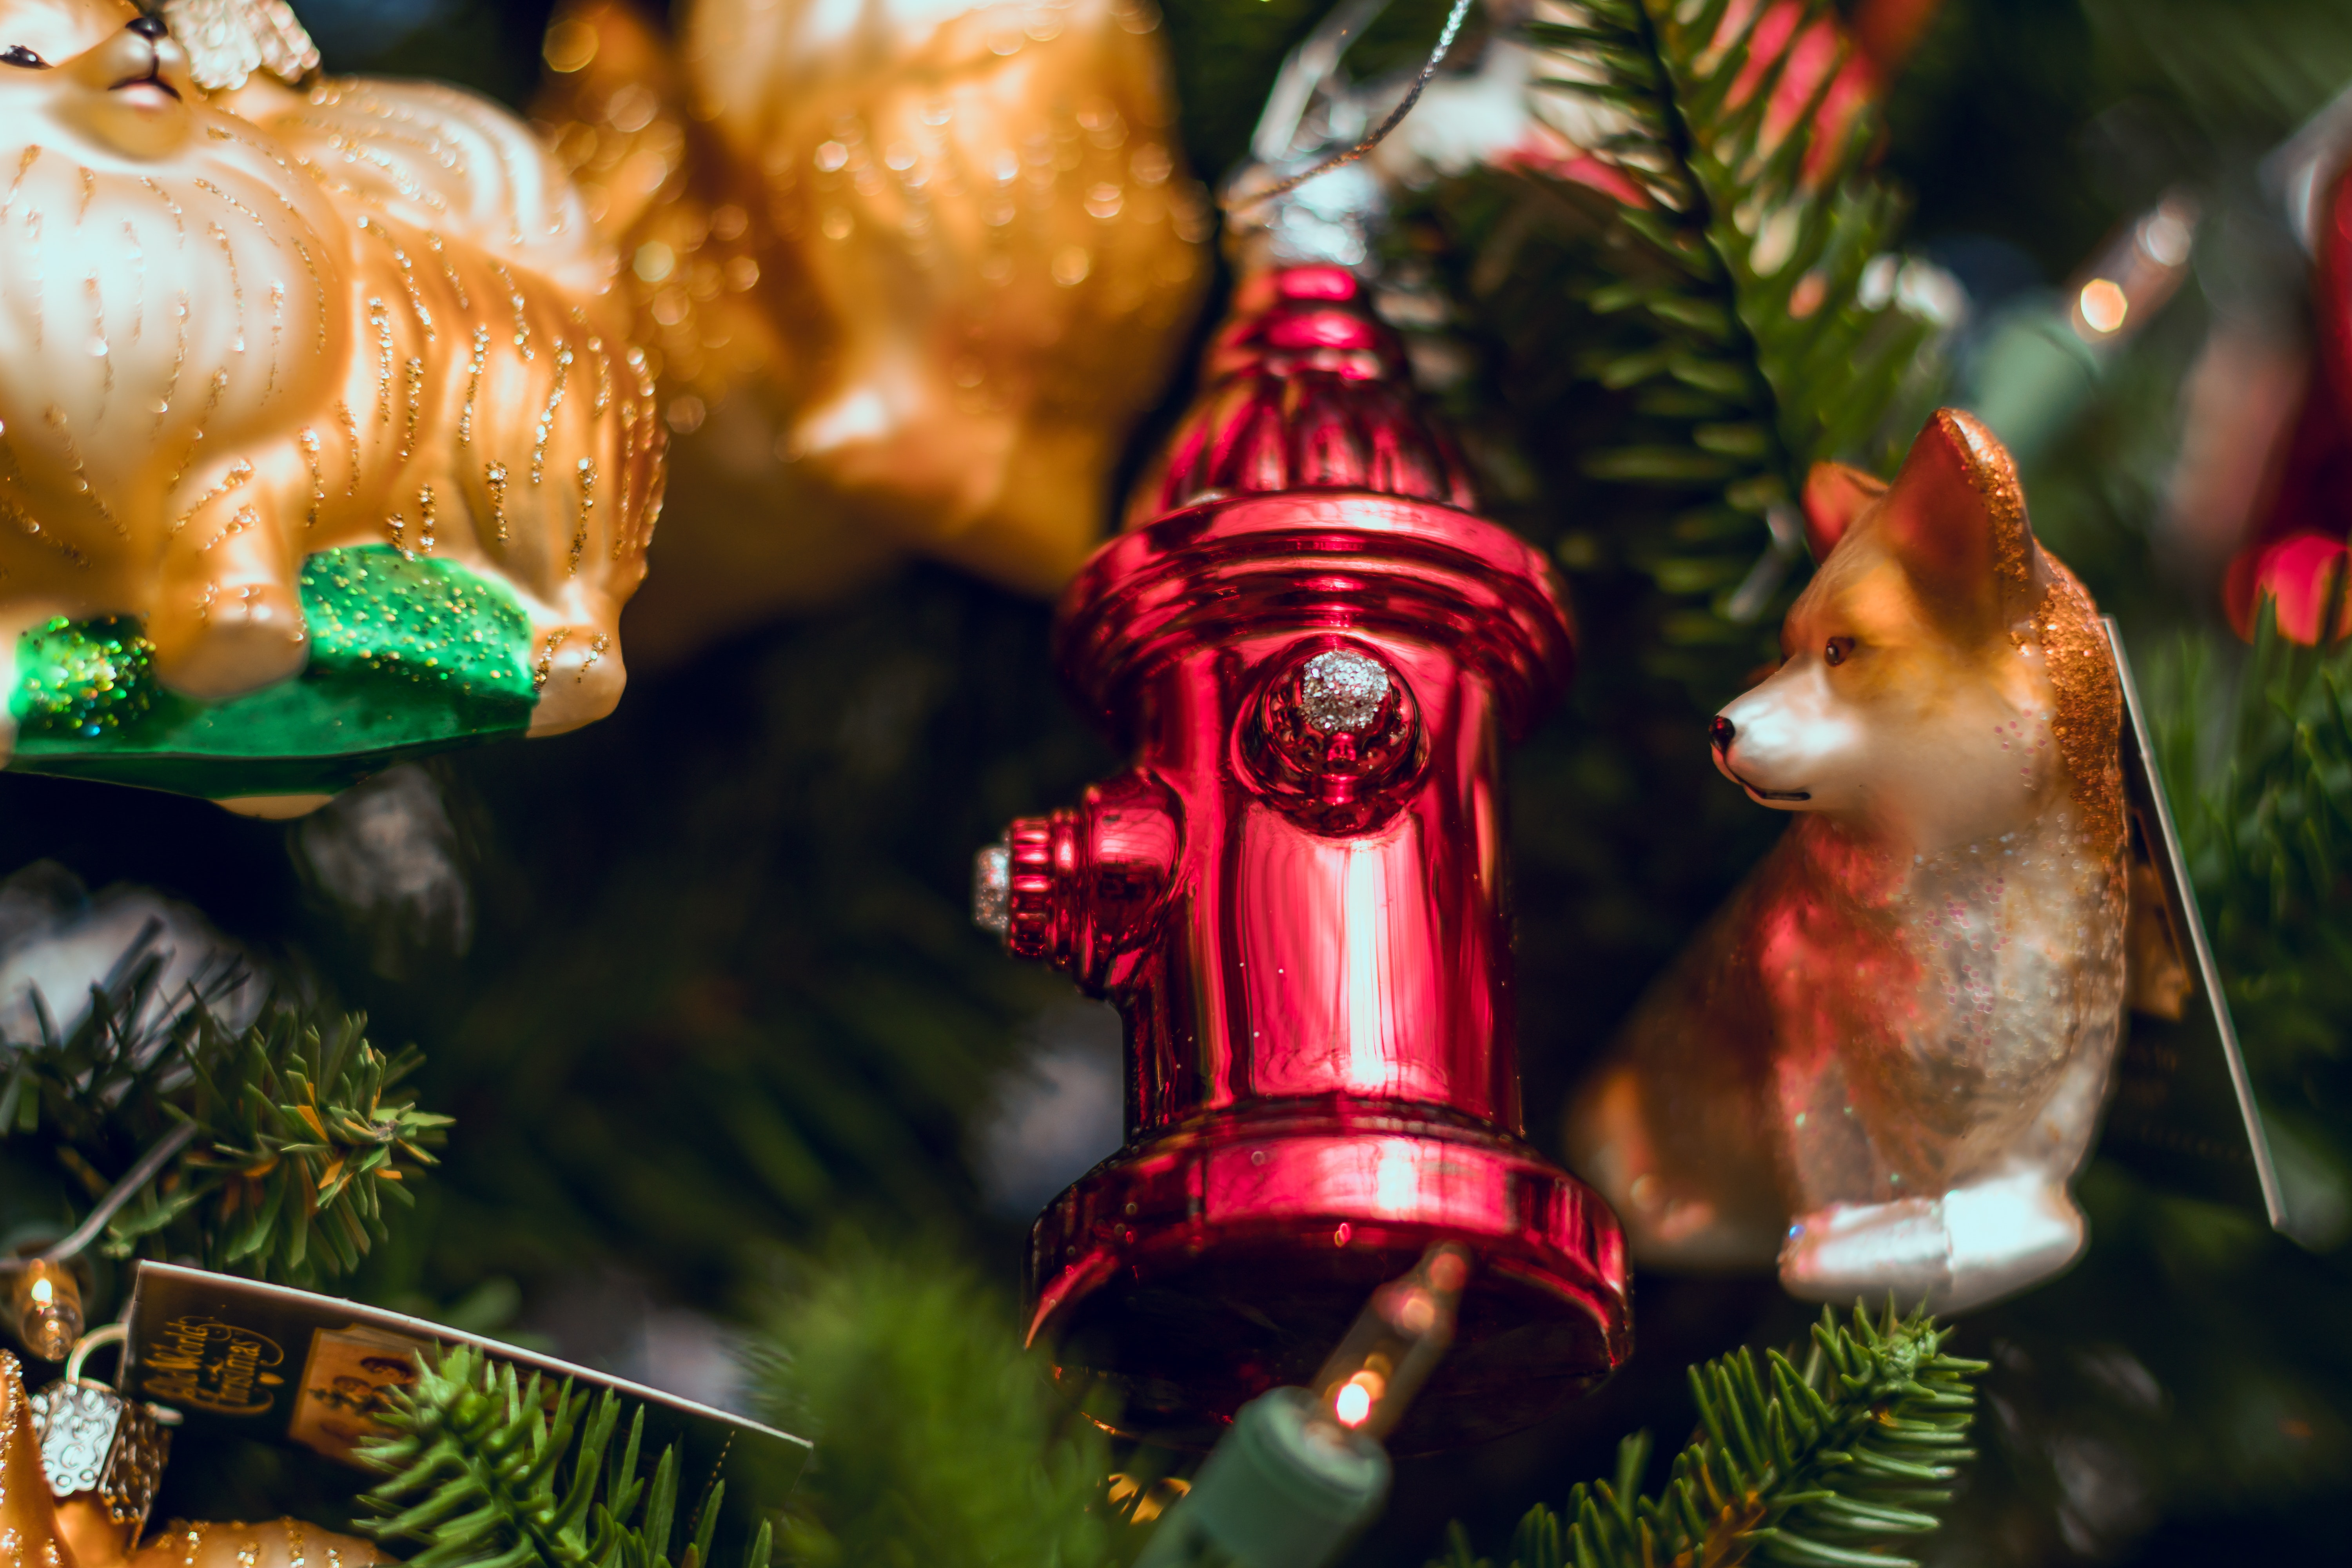 red fire hydrant christmas decor